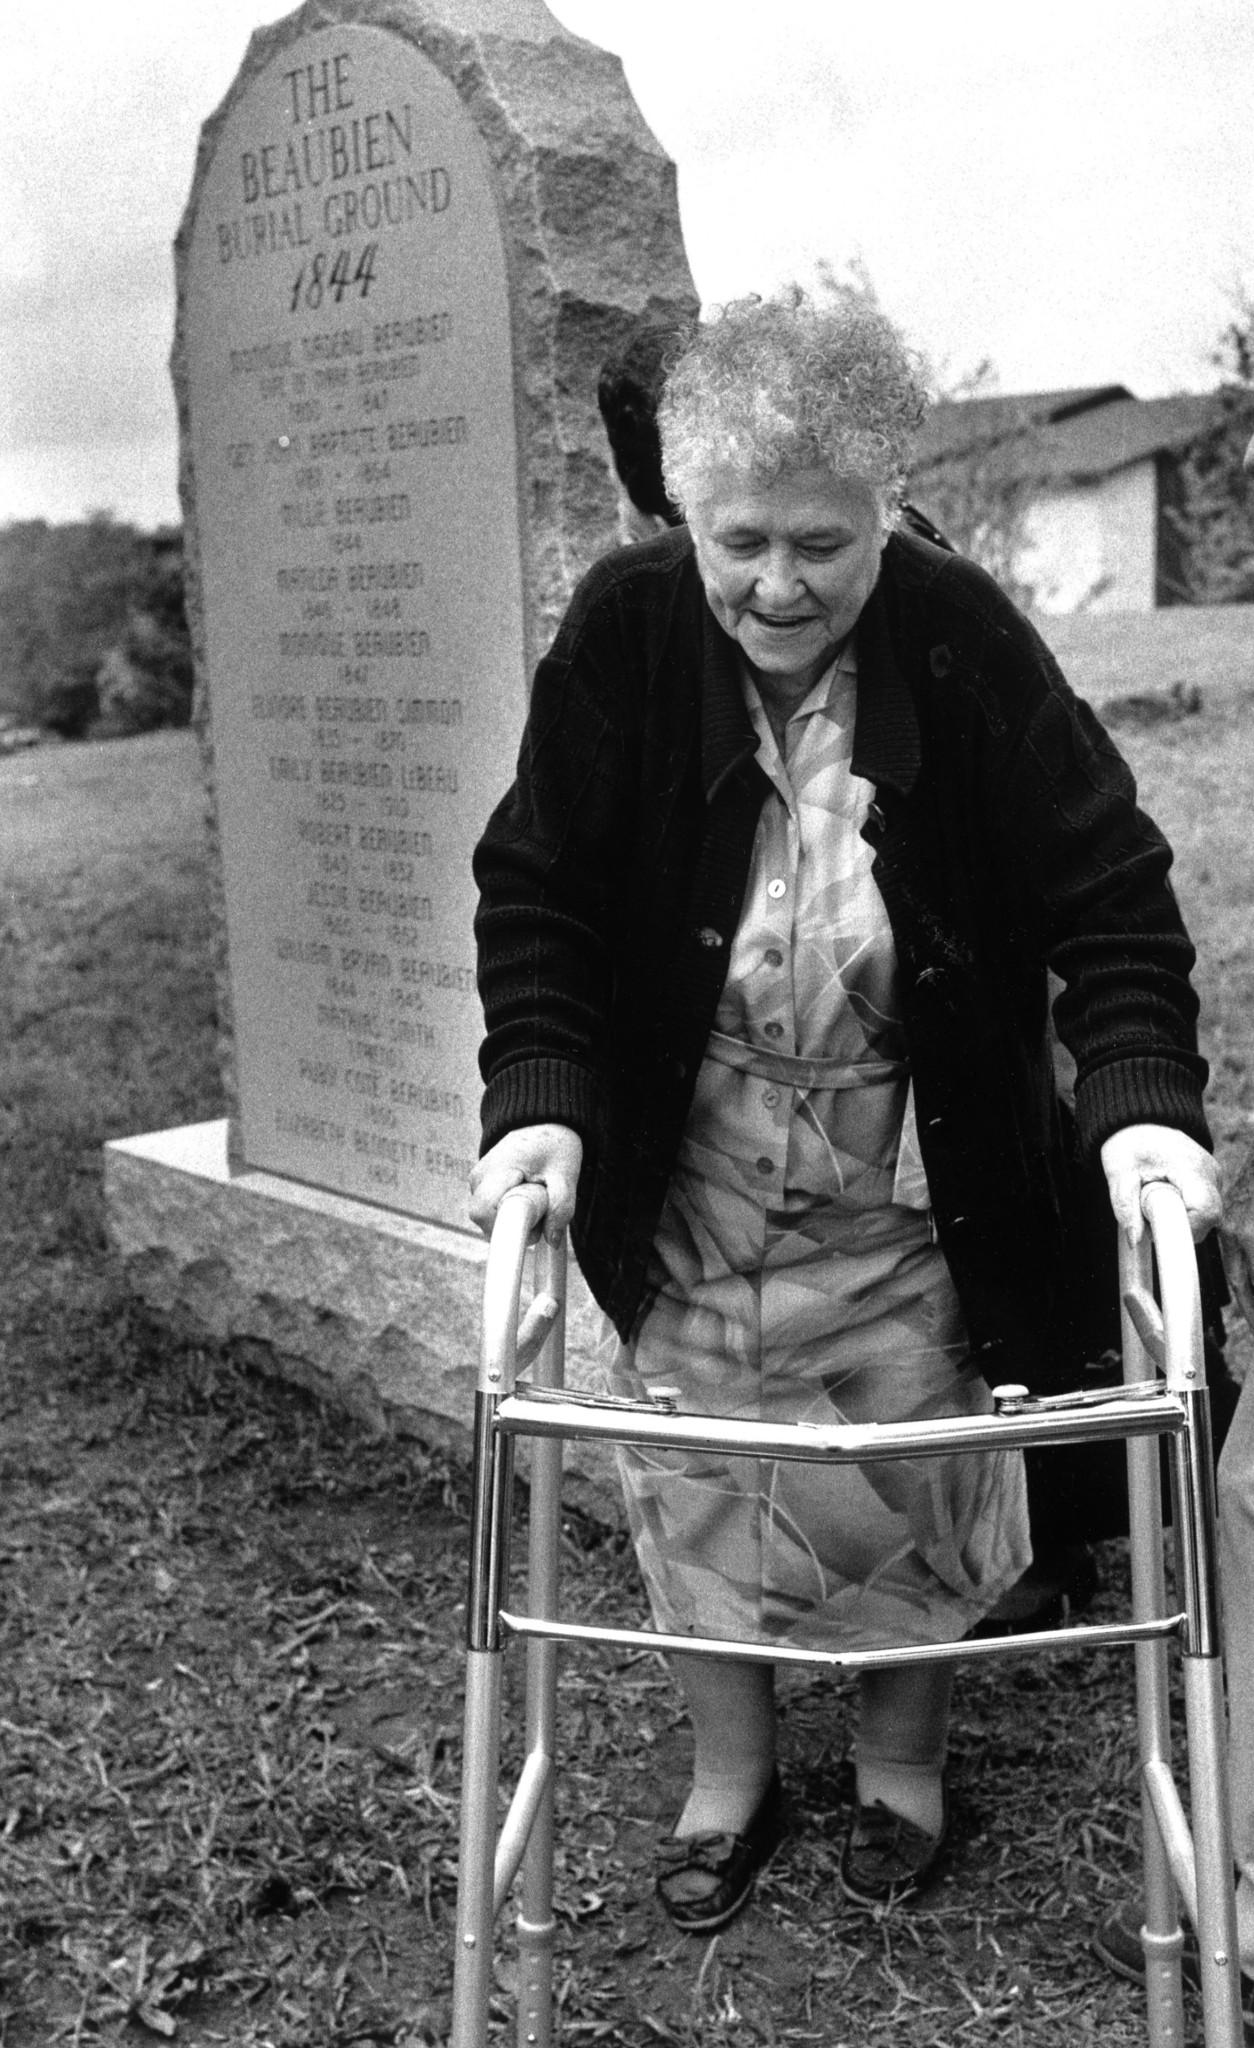 """Marjorie Sanborn, 77, great granddaughter of Marc Beaubien, walks away after ceremonies unveiling the new memorial to her ancestors in Lisle. - Nancy Stone / Chicago Tribune."" (Photo gallery: A history of Lisle. Chicago Tribune, accessed 4/1/2020.)"